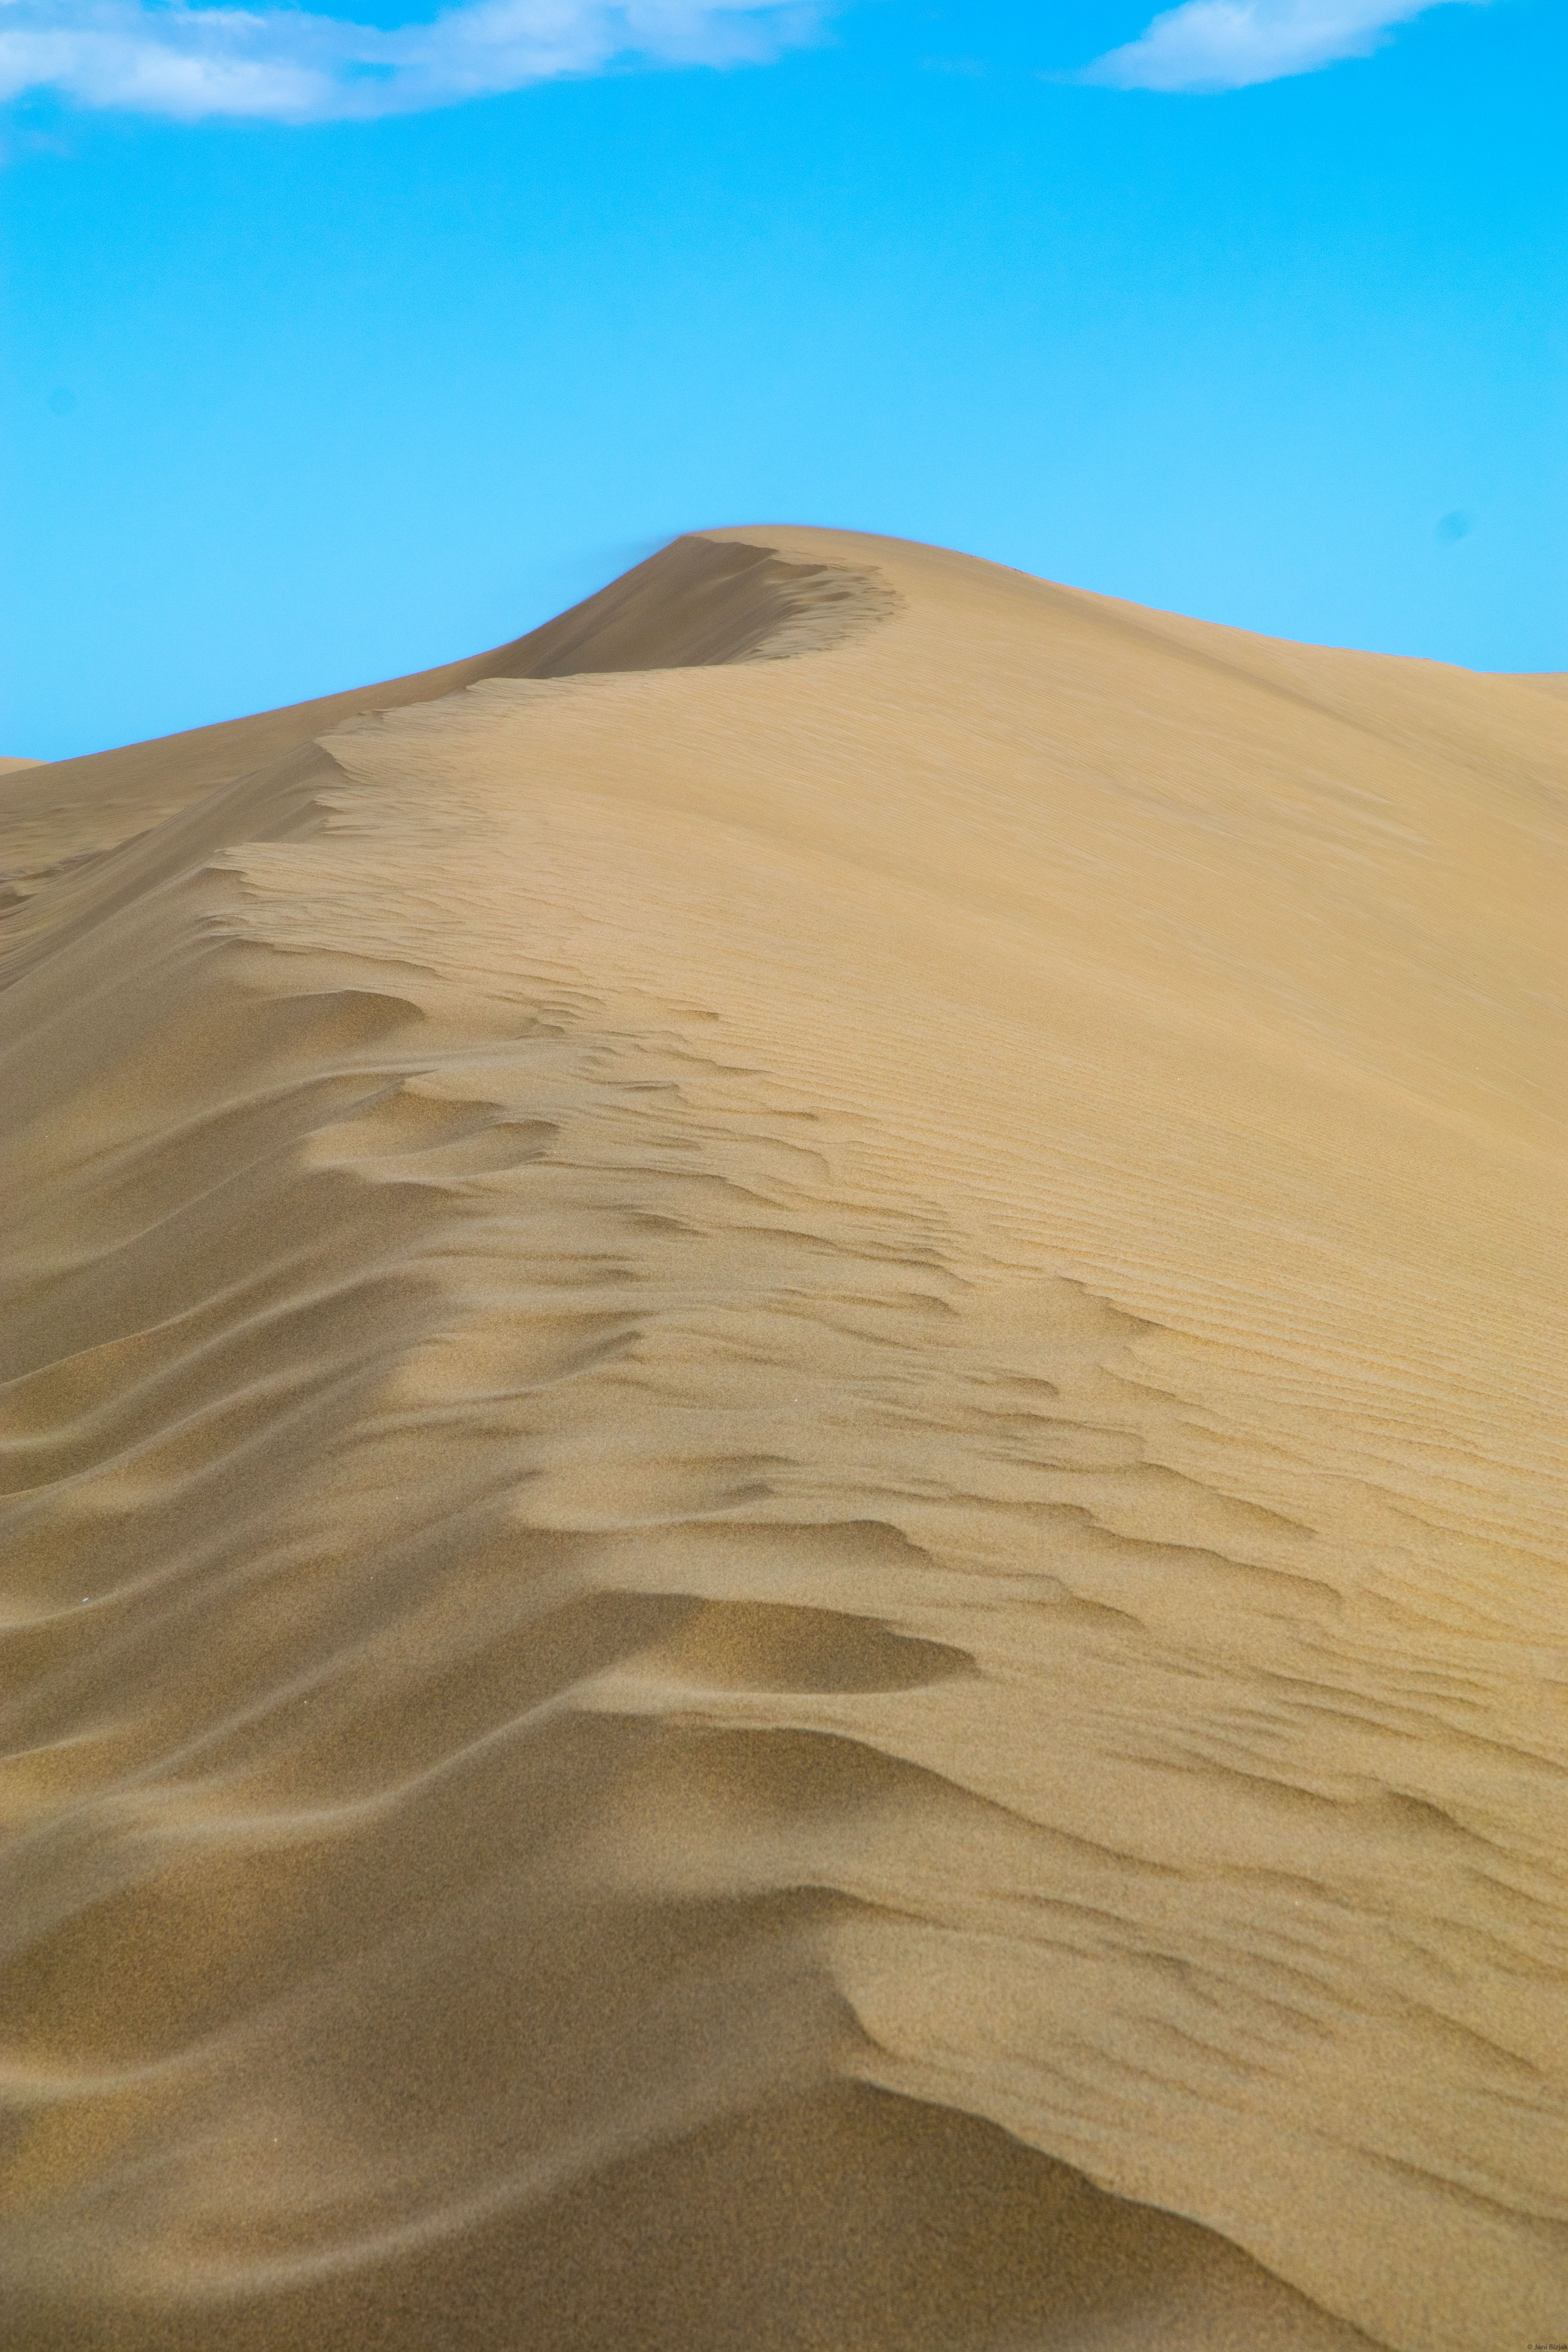 The dunes were surprisingly large, it took quite some time to get on top of one.